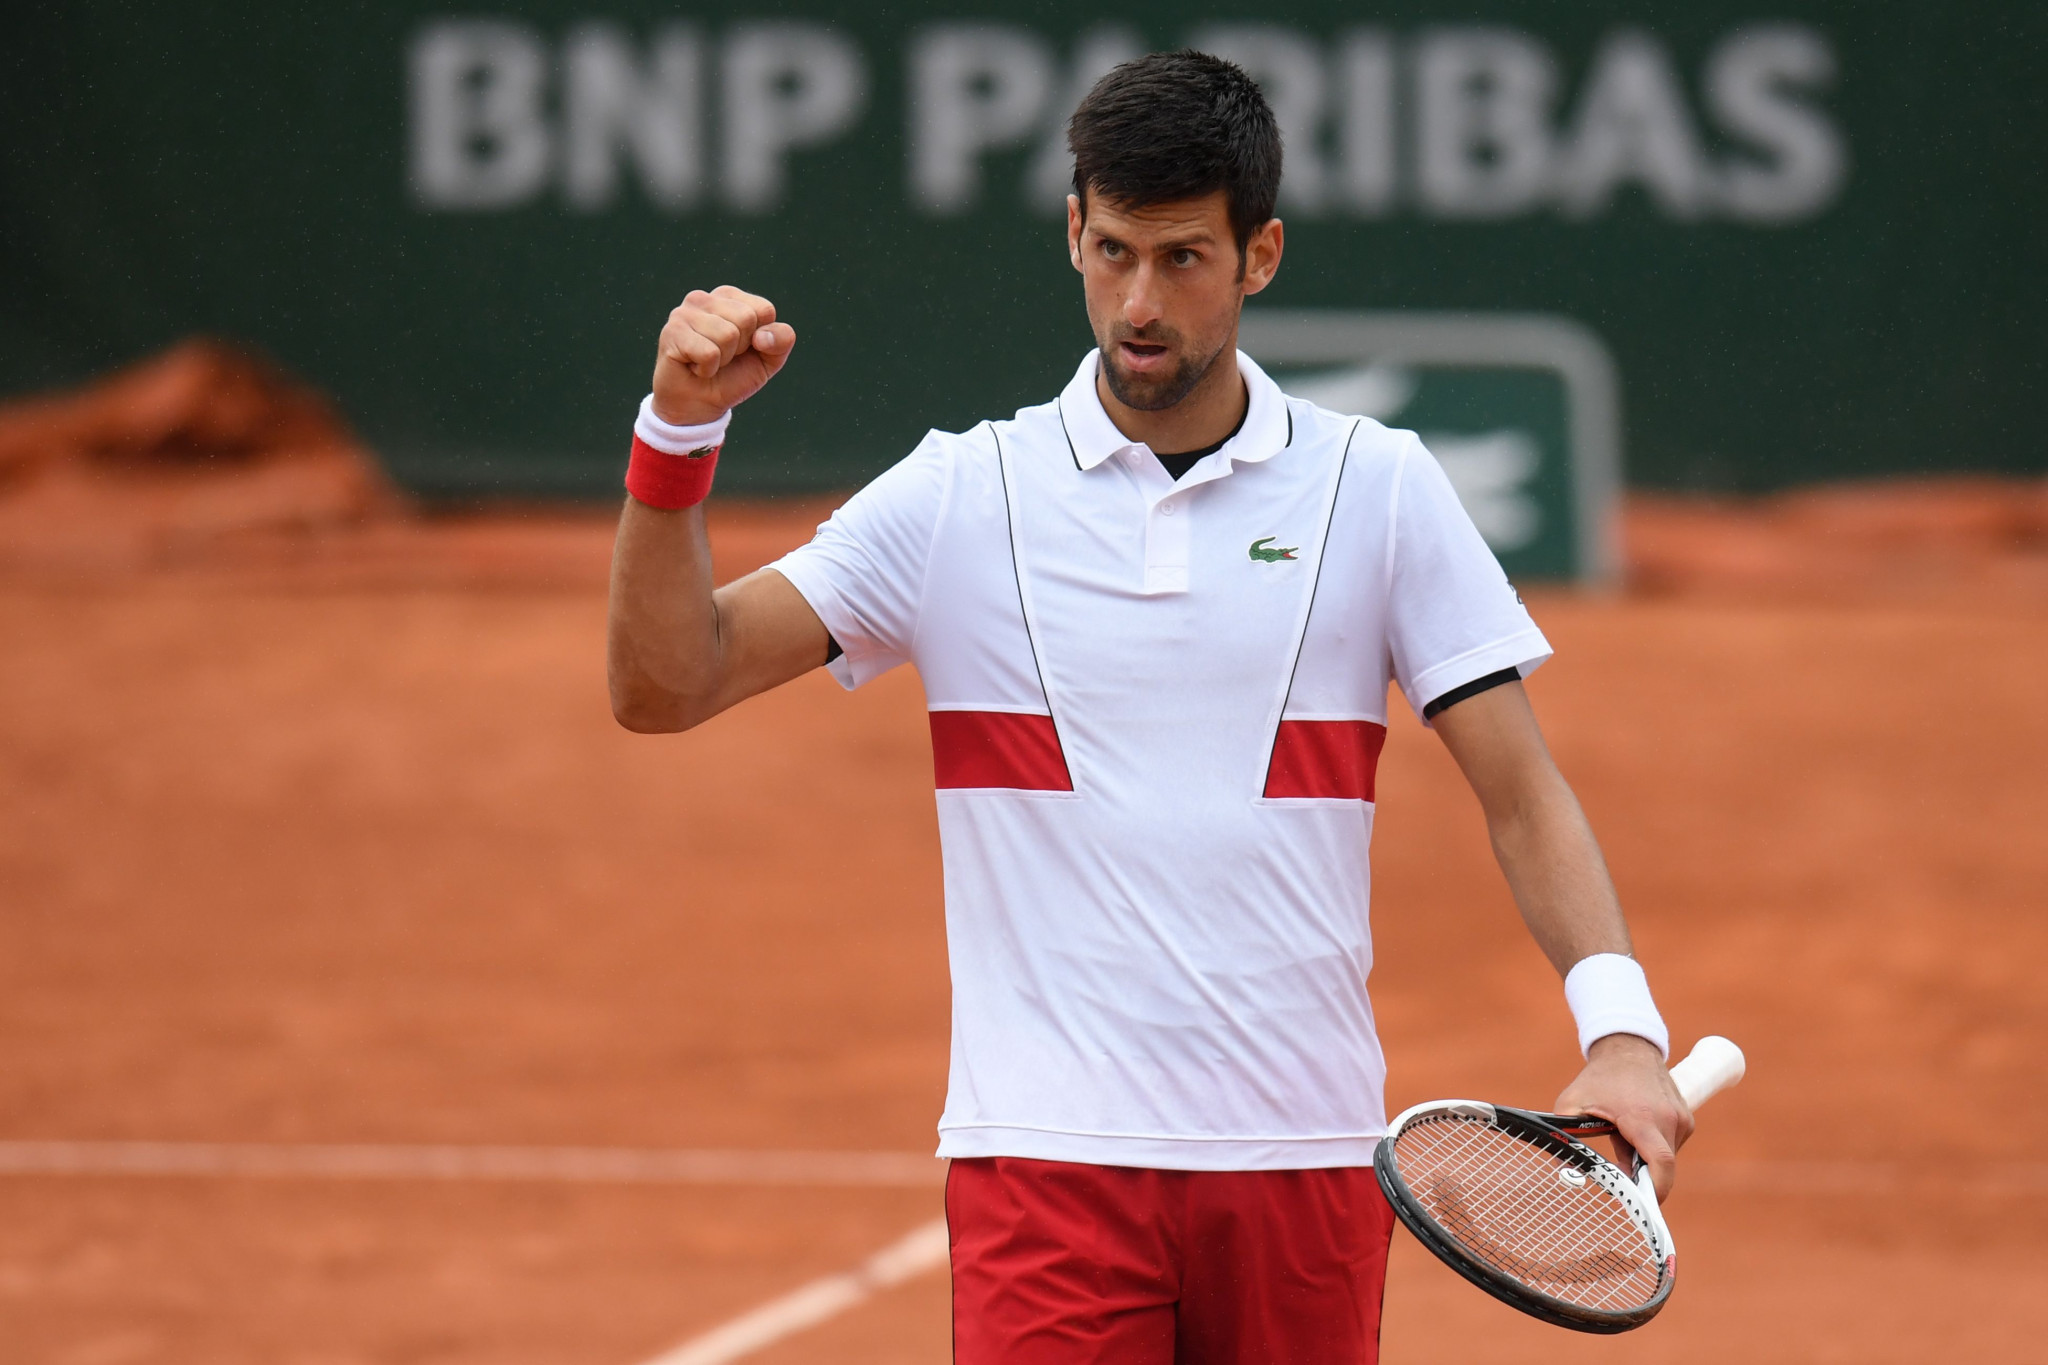 Djokovic and Zverev battle through to last 16 at French Open